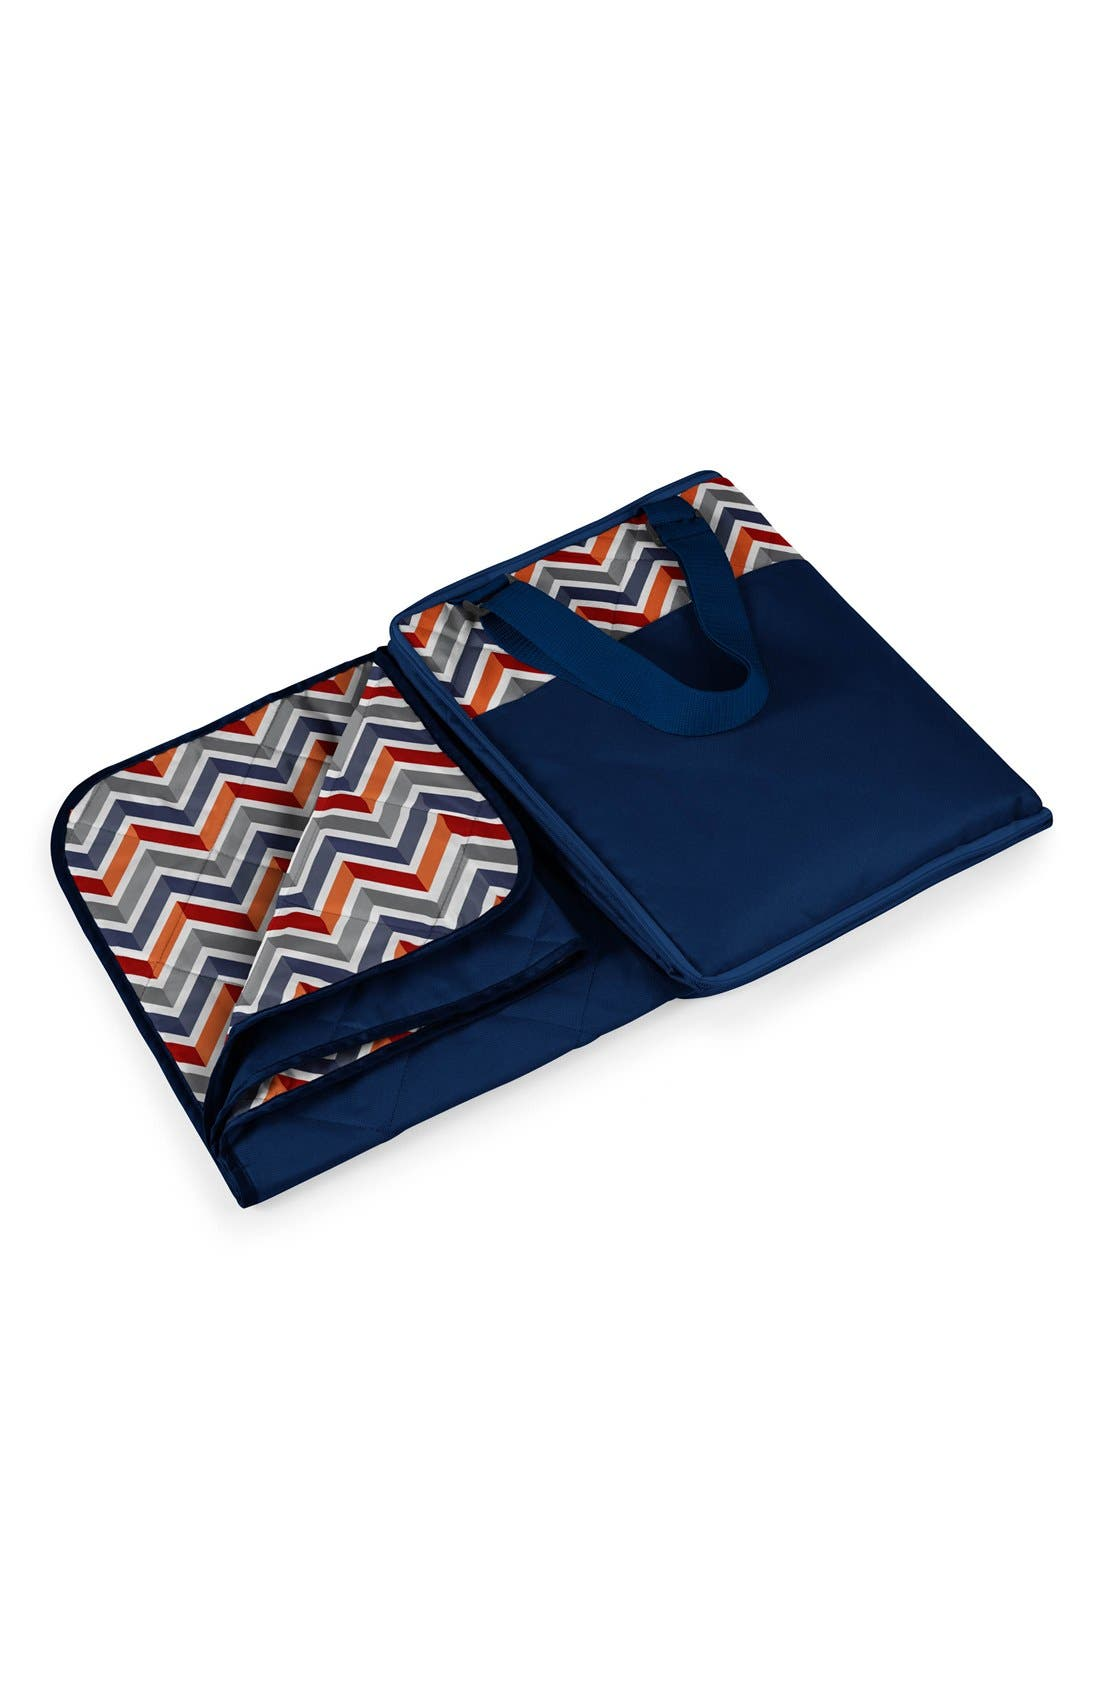 'Vista' Packable Picnic Blanket,                             Main thumbnail 1, color,                             Vibe